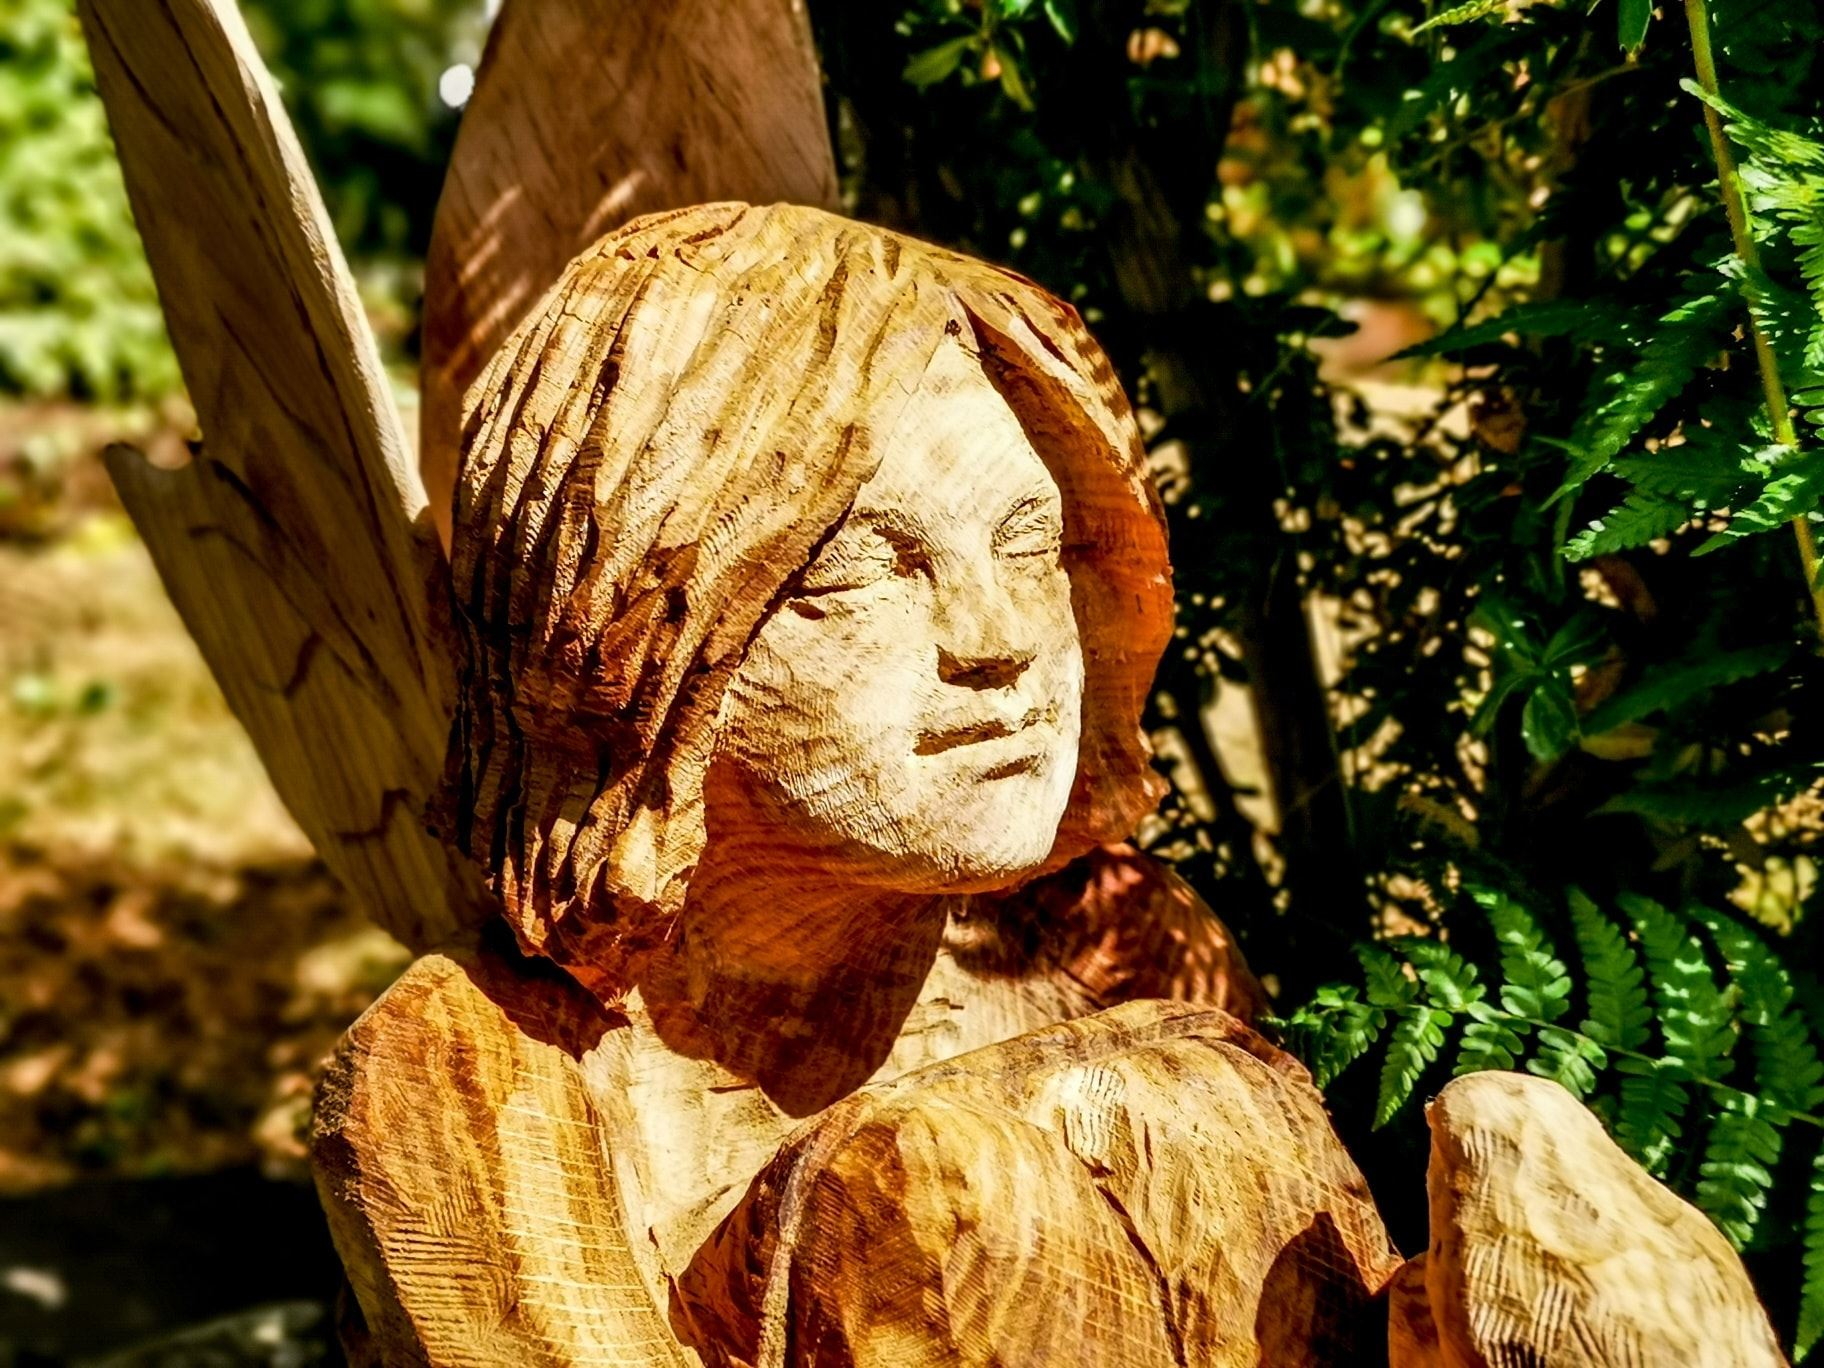 close up of the face of the oak memoral sculpture for robyn by simon o'rourke. a young girls face is shown in an oak carving with a serene expression